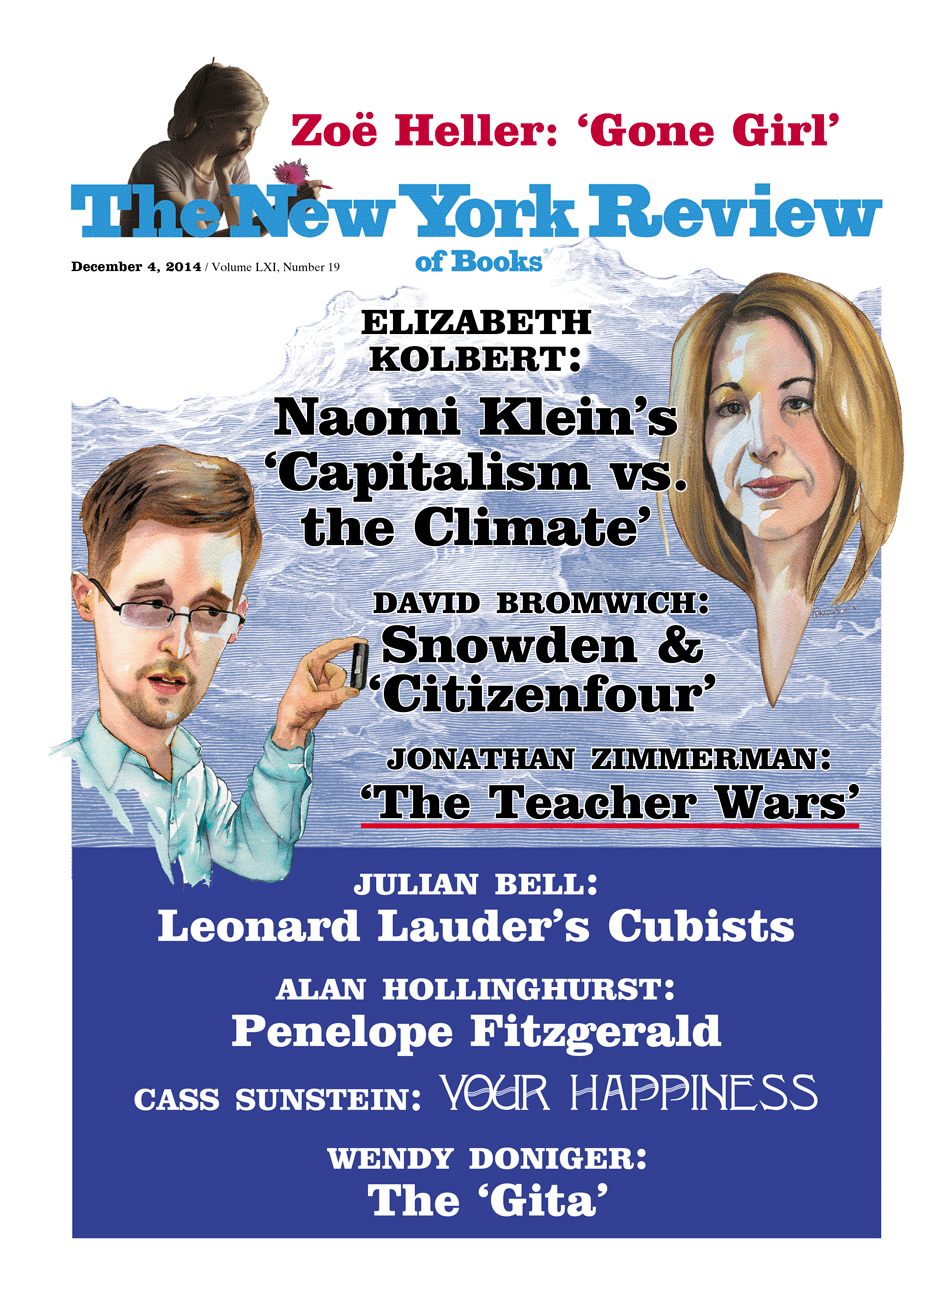 Image of the December 4, 2014 issue cover.